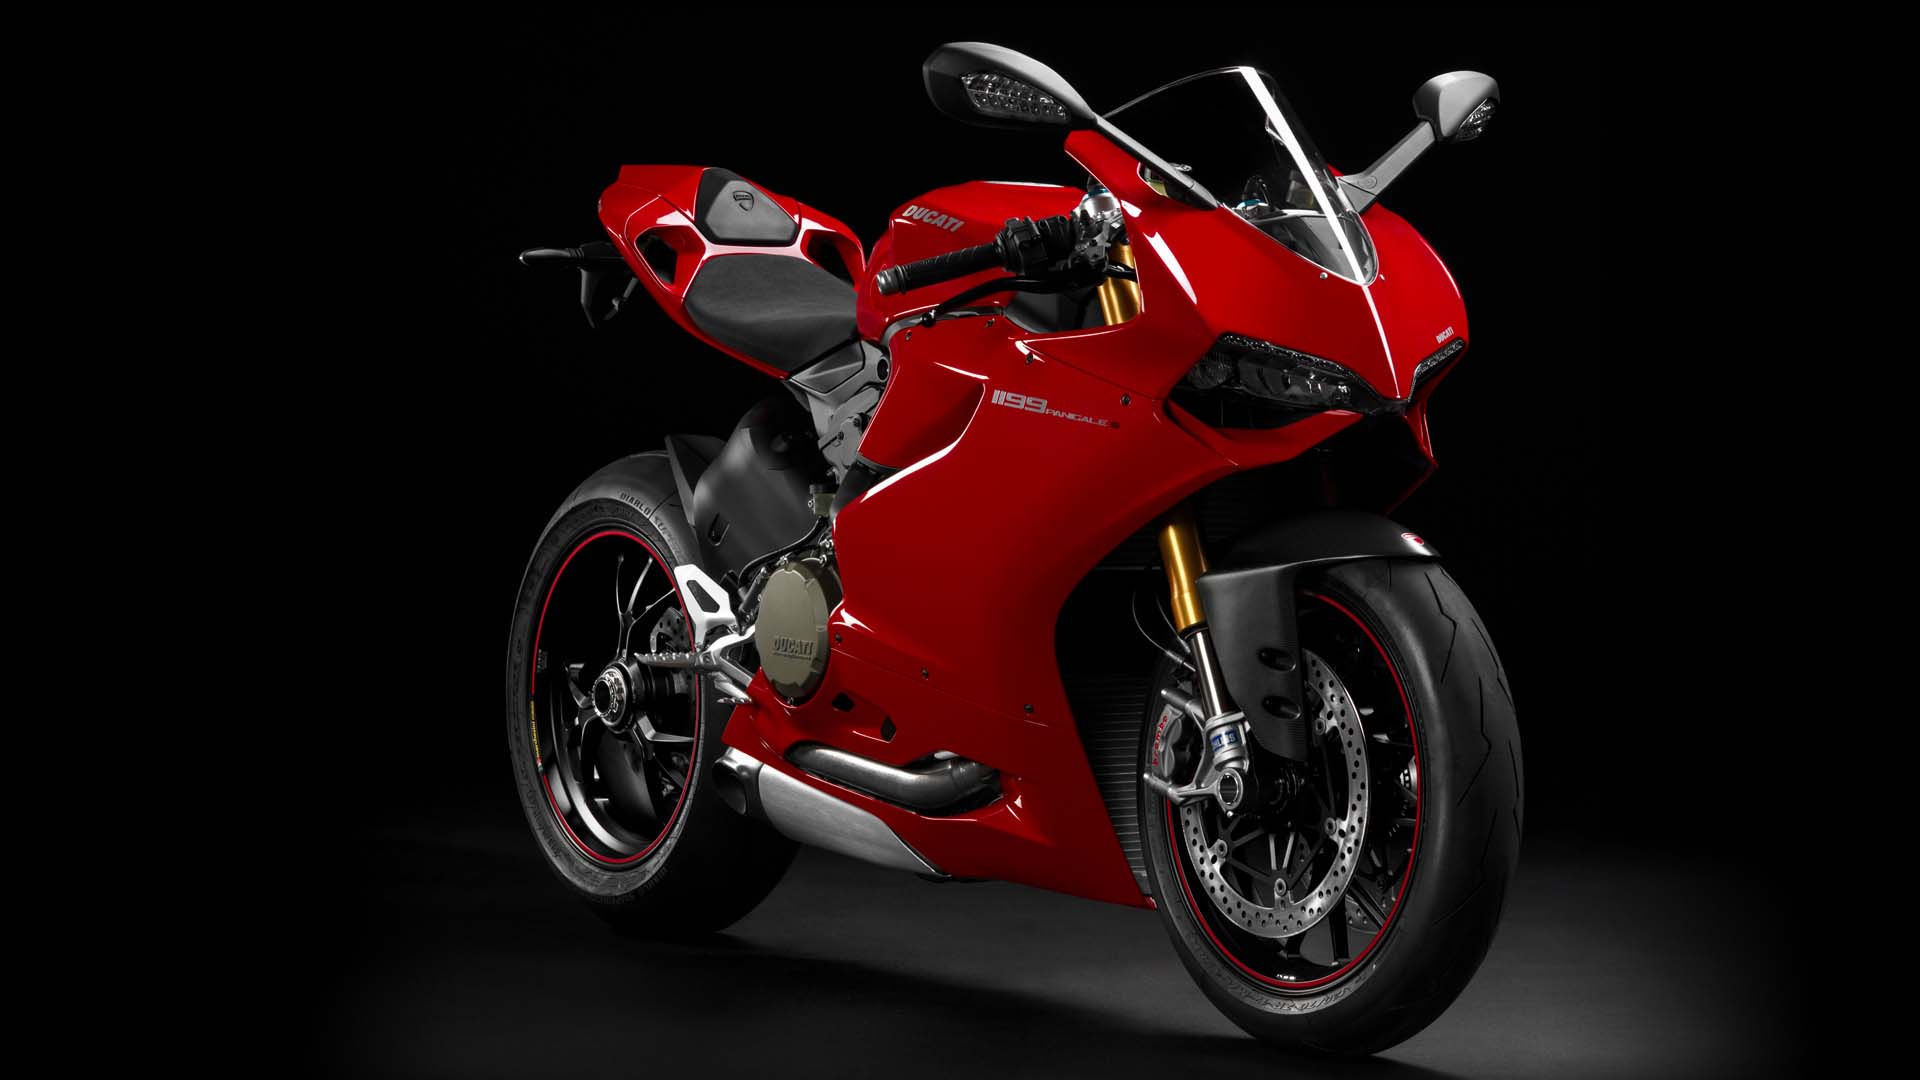 2014 Ducati 1199 PANIGALE S | Ducati 1199 Panigale S - Red Model Side